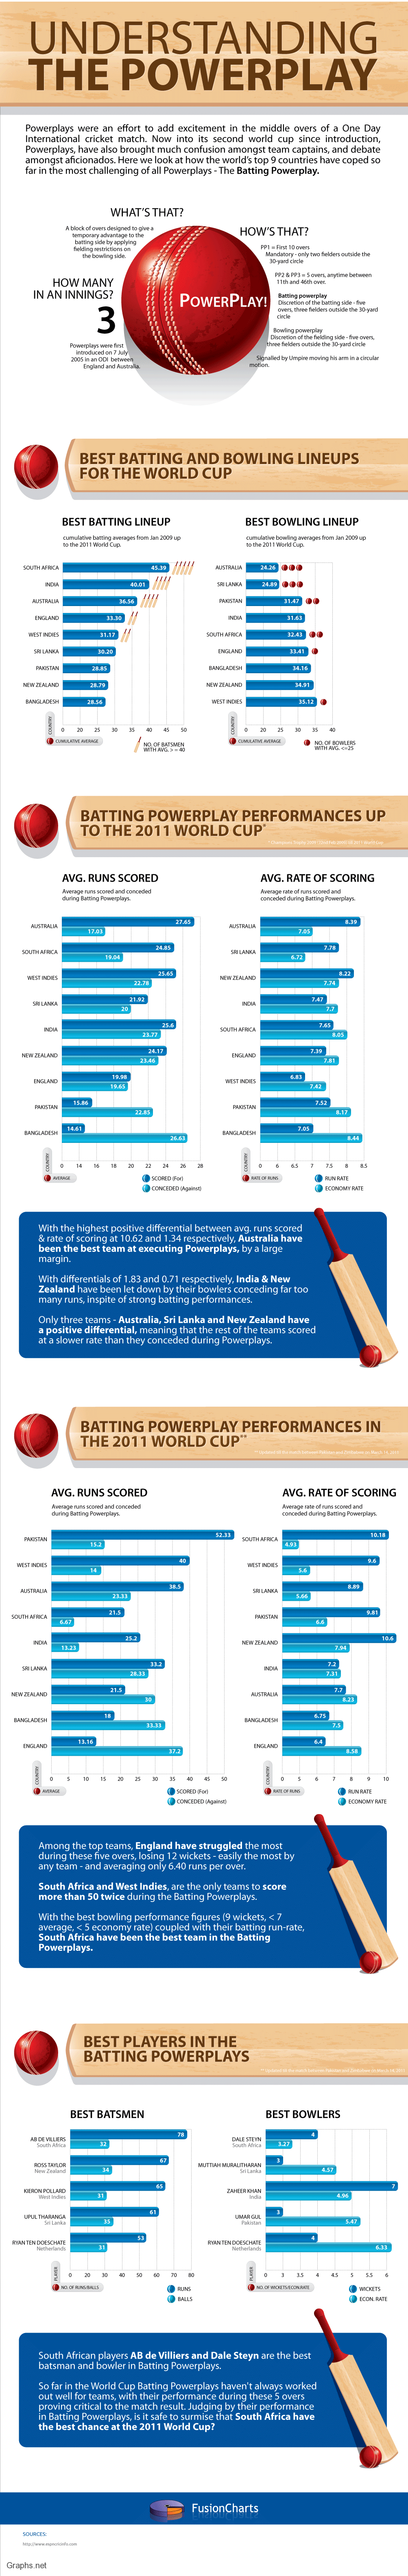 Powerplays in Cricket